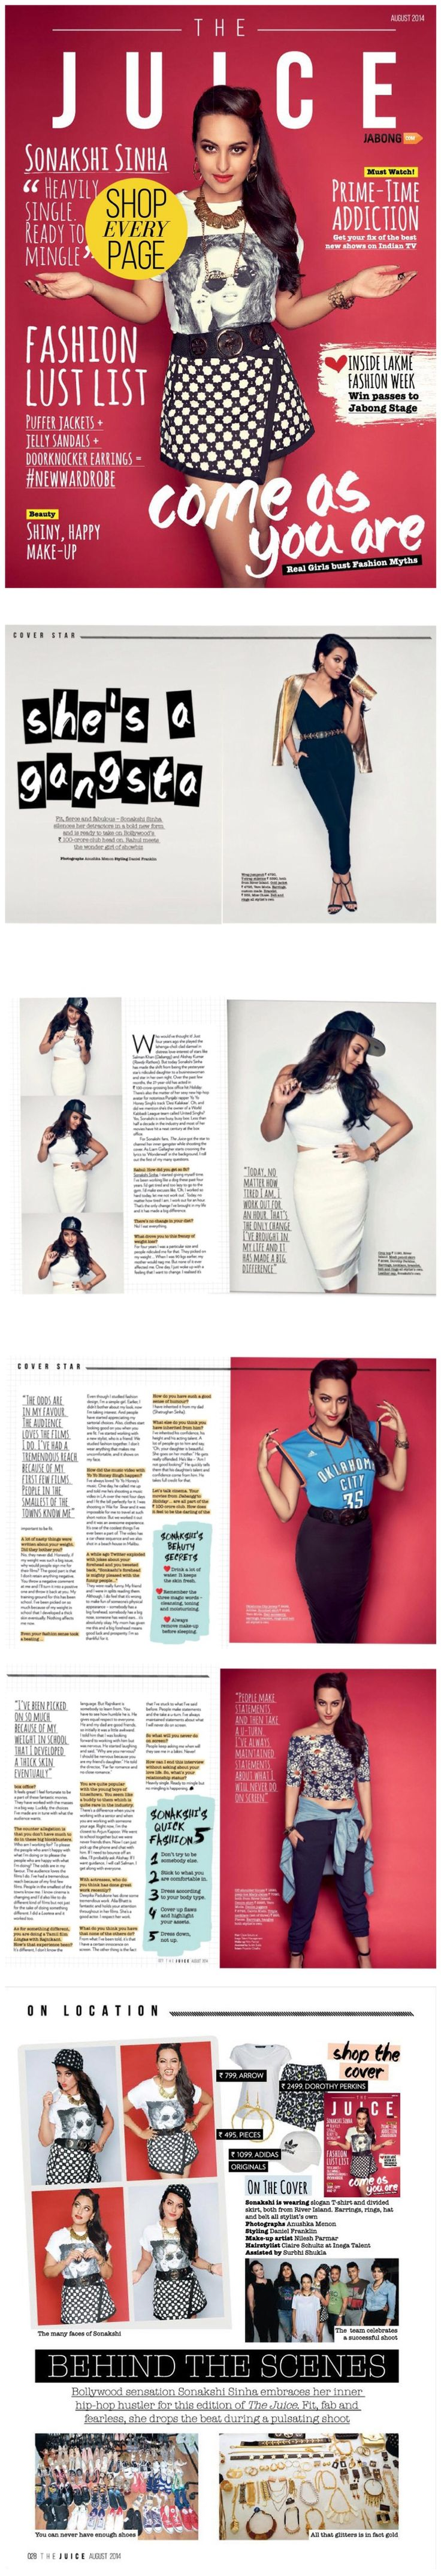 Sonakshi Sinha going gangsta for The Juice Magazine this month.